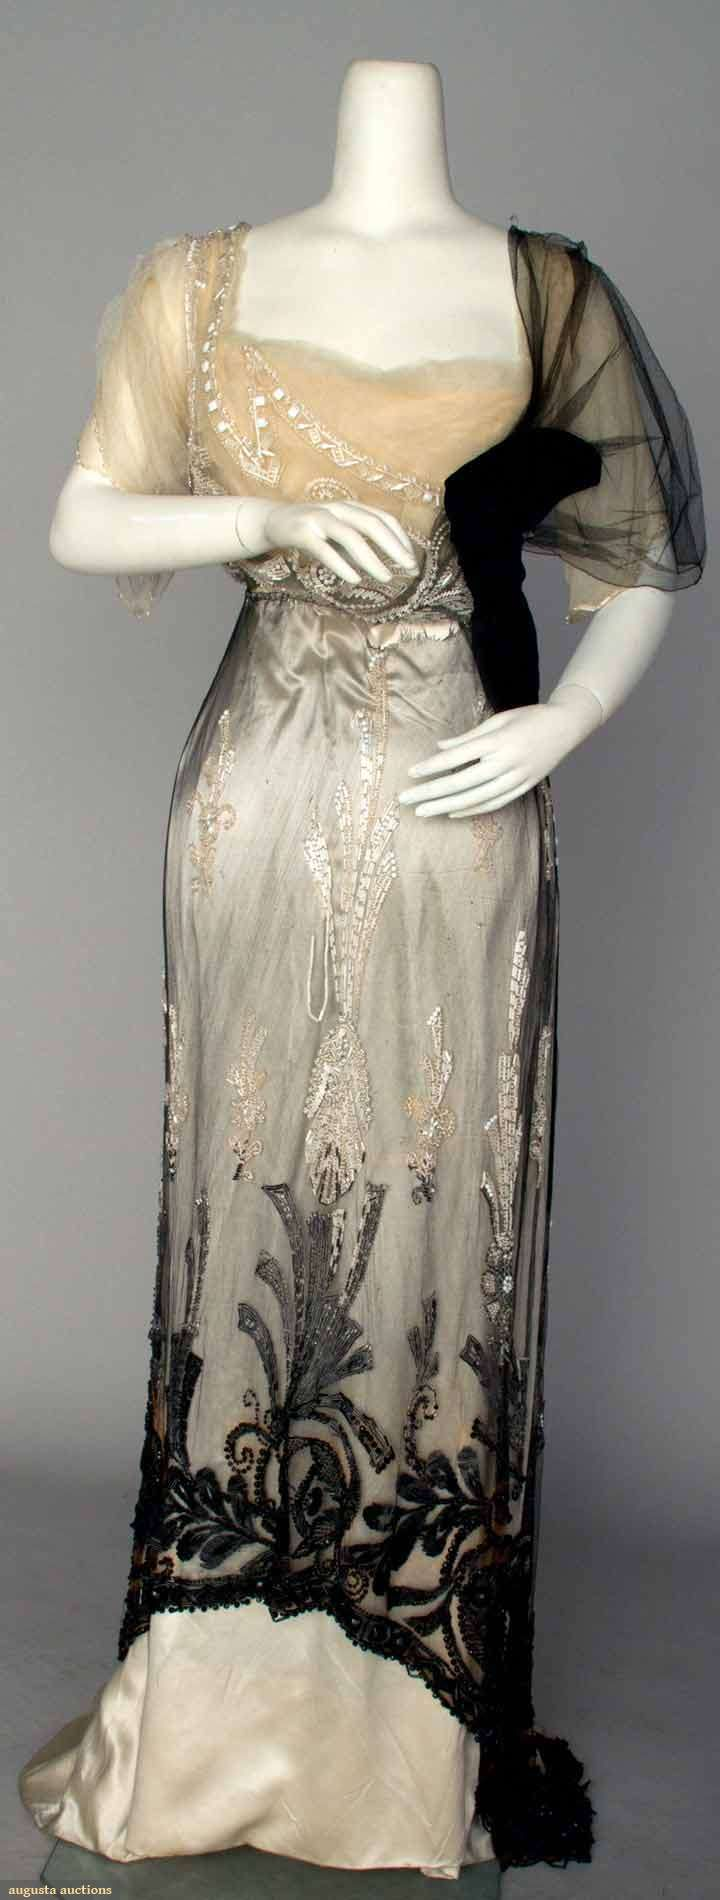 Augusta Auctions, April 17, 2013 - NYC, Lot 39: Paquin Evening Gown, Paris, Winter 1911